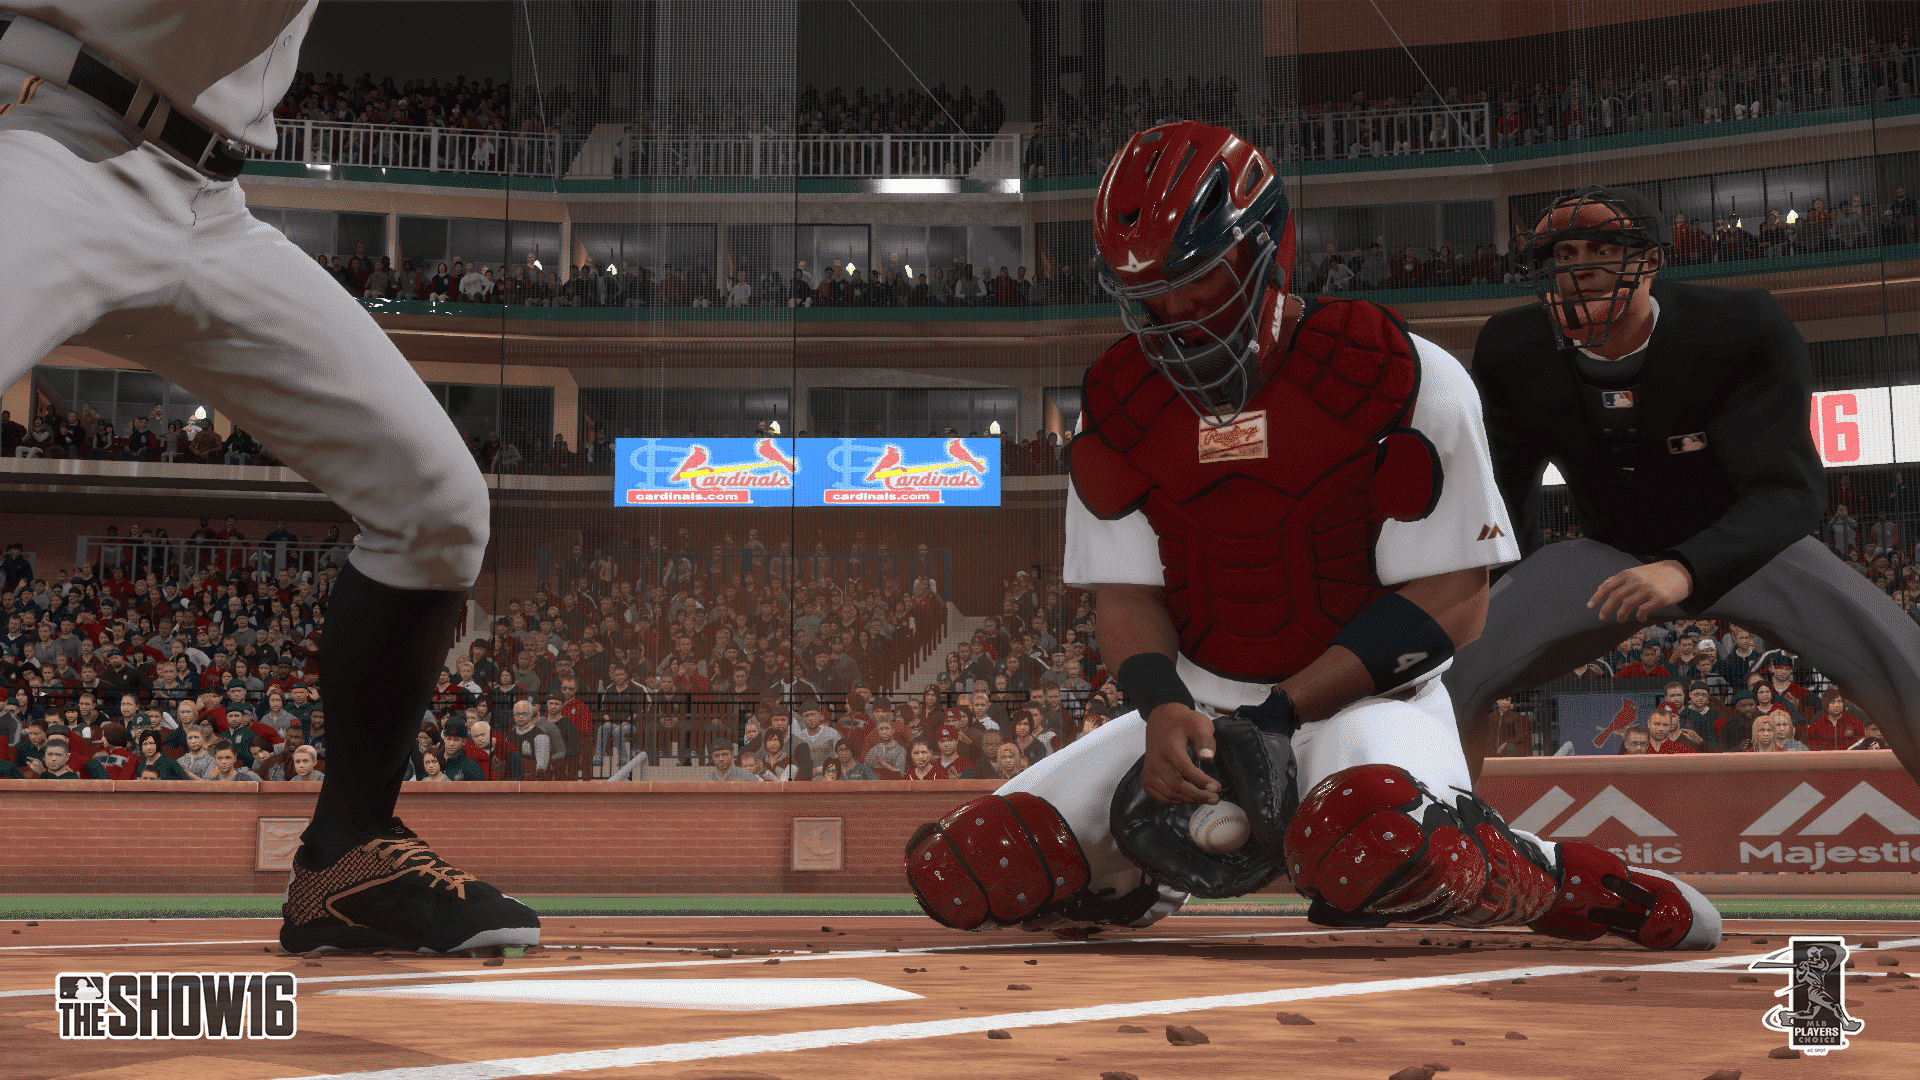 mlb16 molina catch